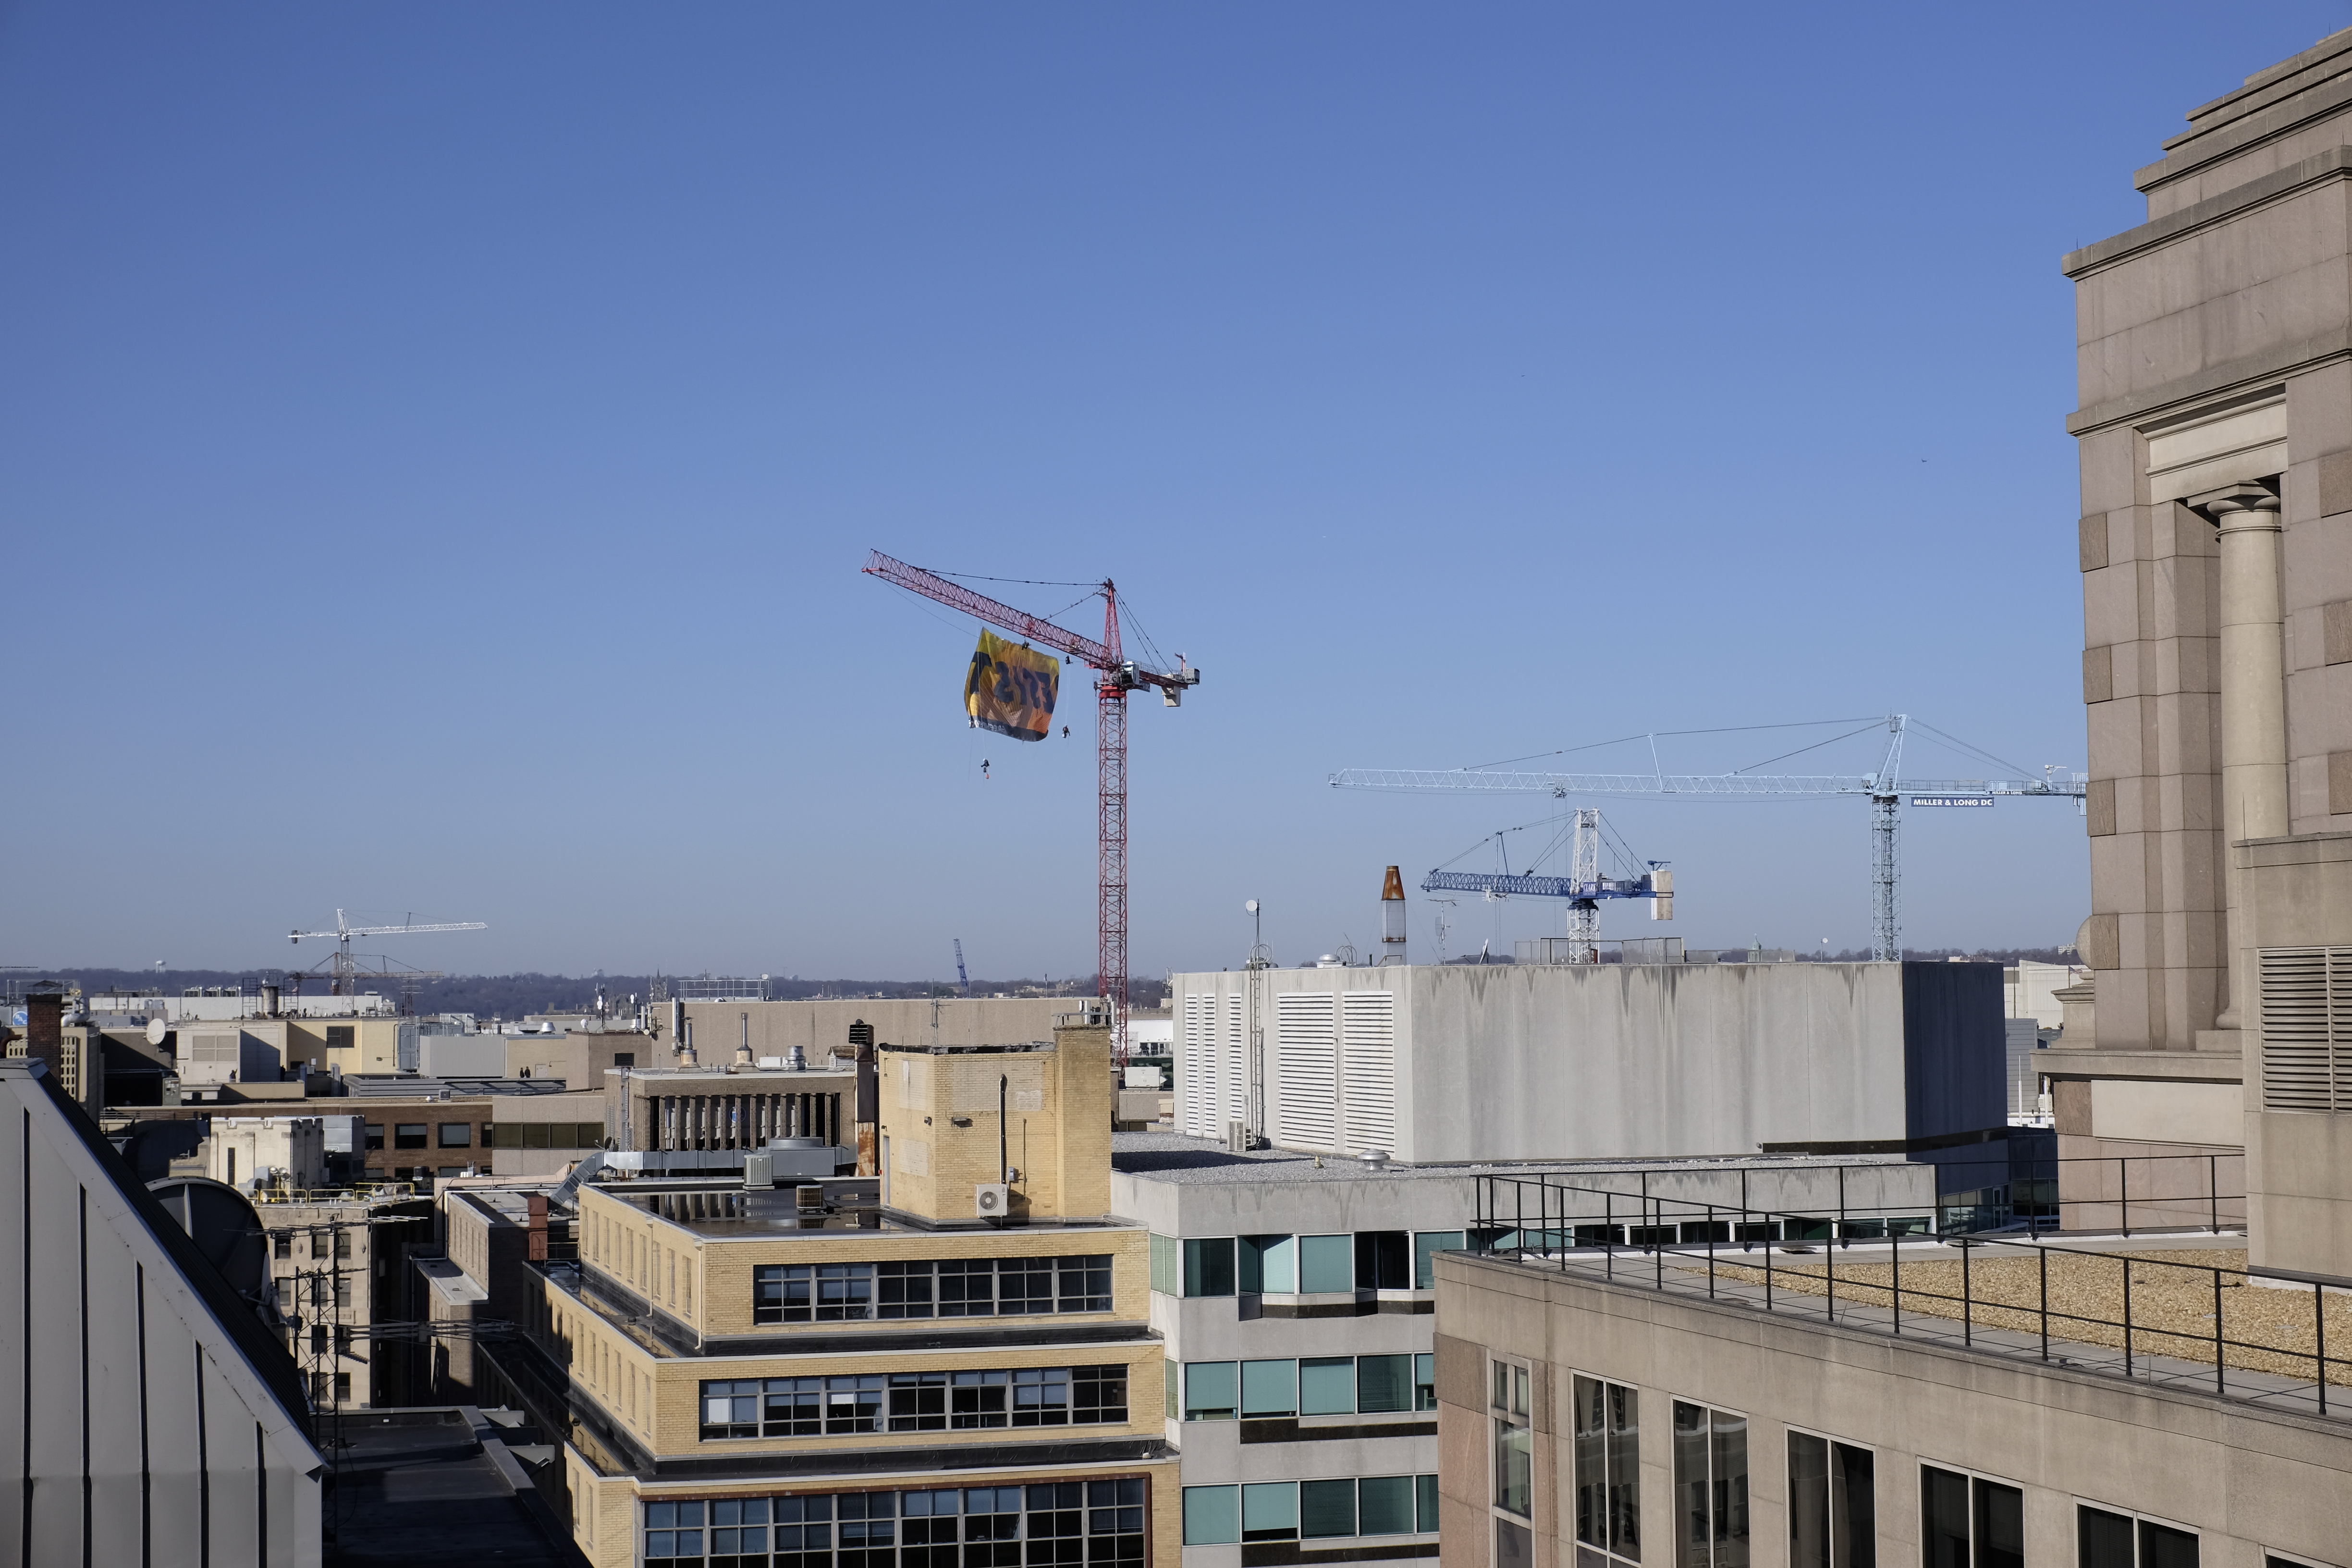 Several cranes are seen in the distance above office buildings from a rooftop.